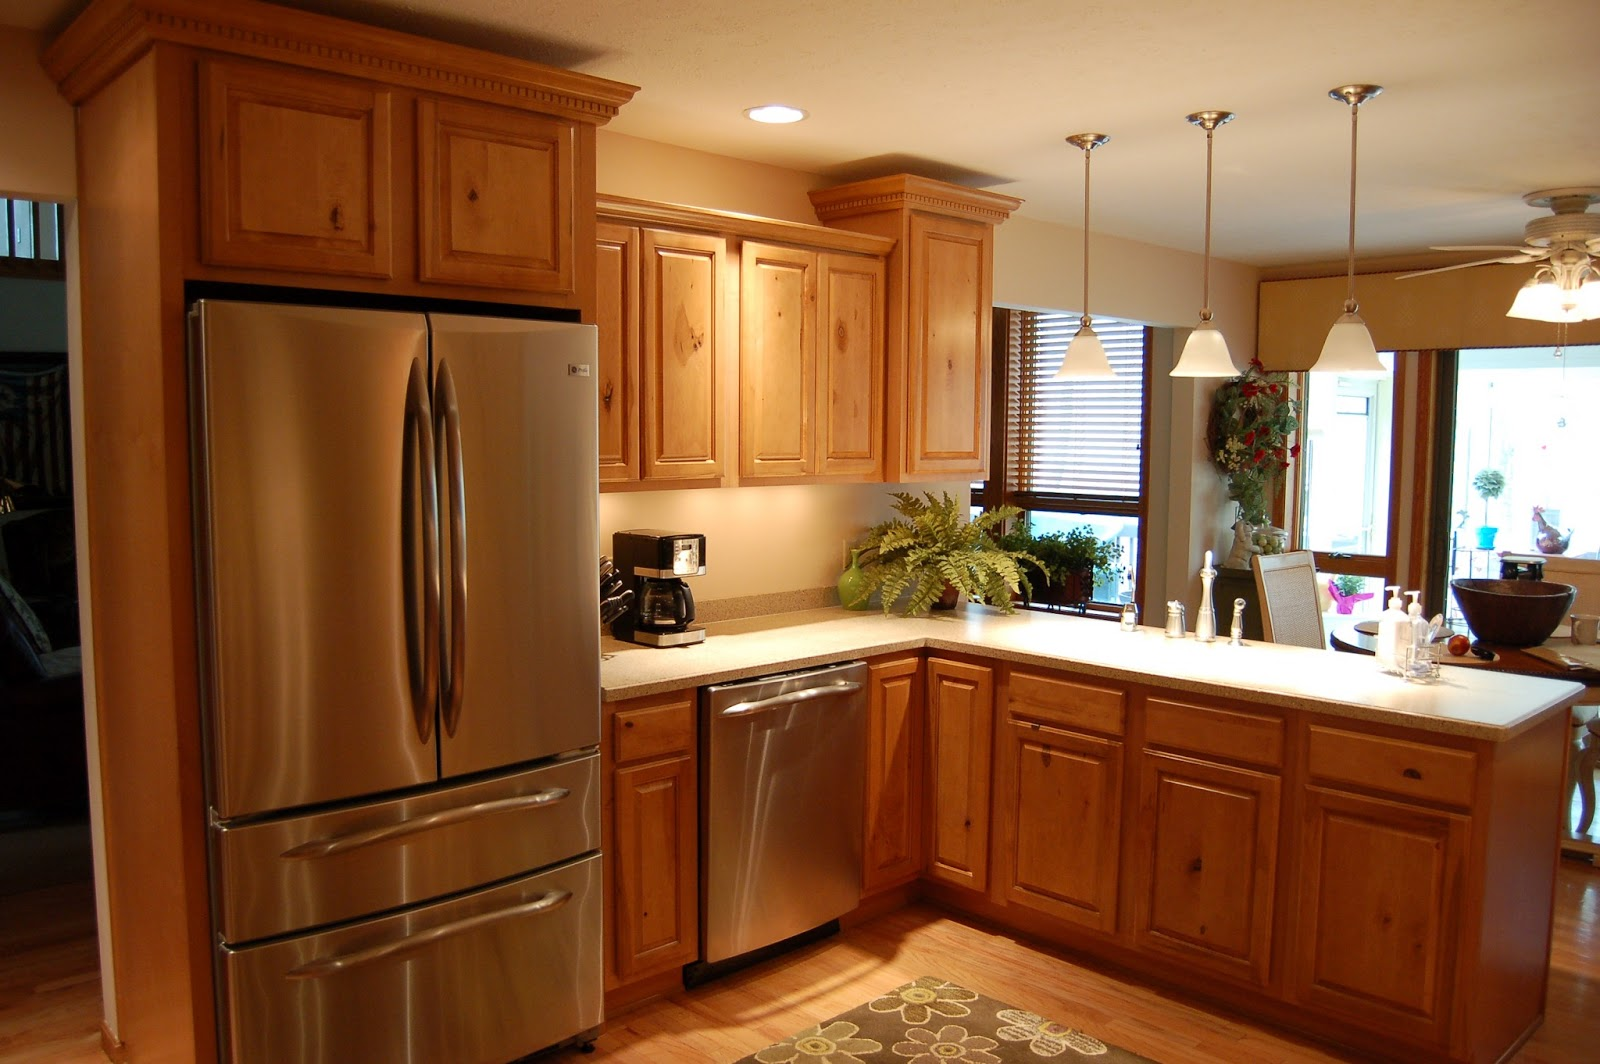 Chicago kitchen remodeling ideas kitchen remodeling chicago for Remodeling kitchen ideas